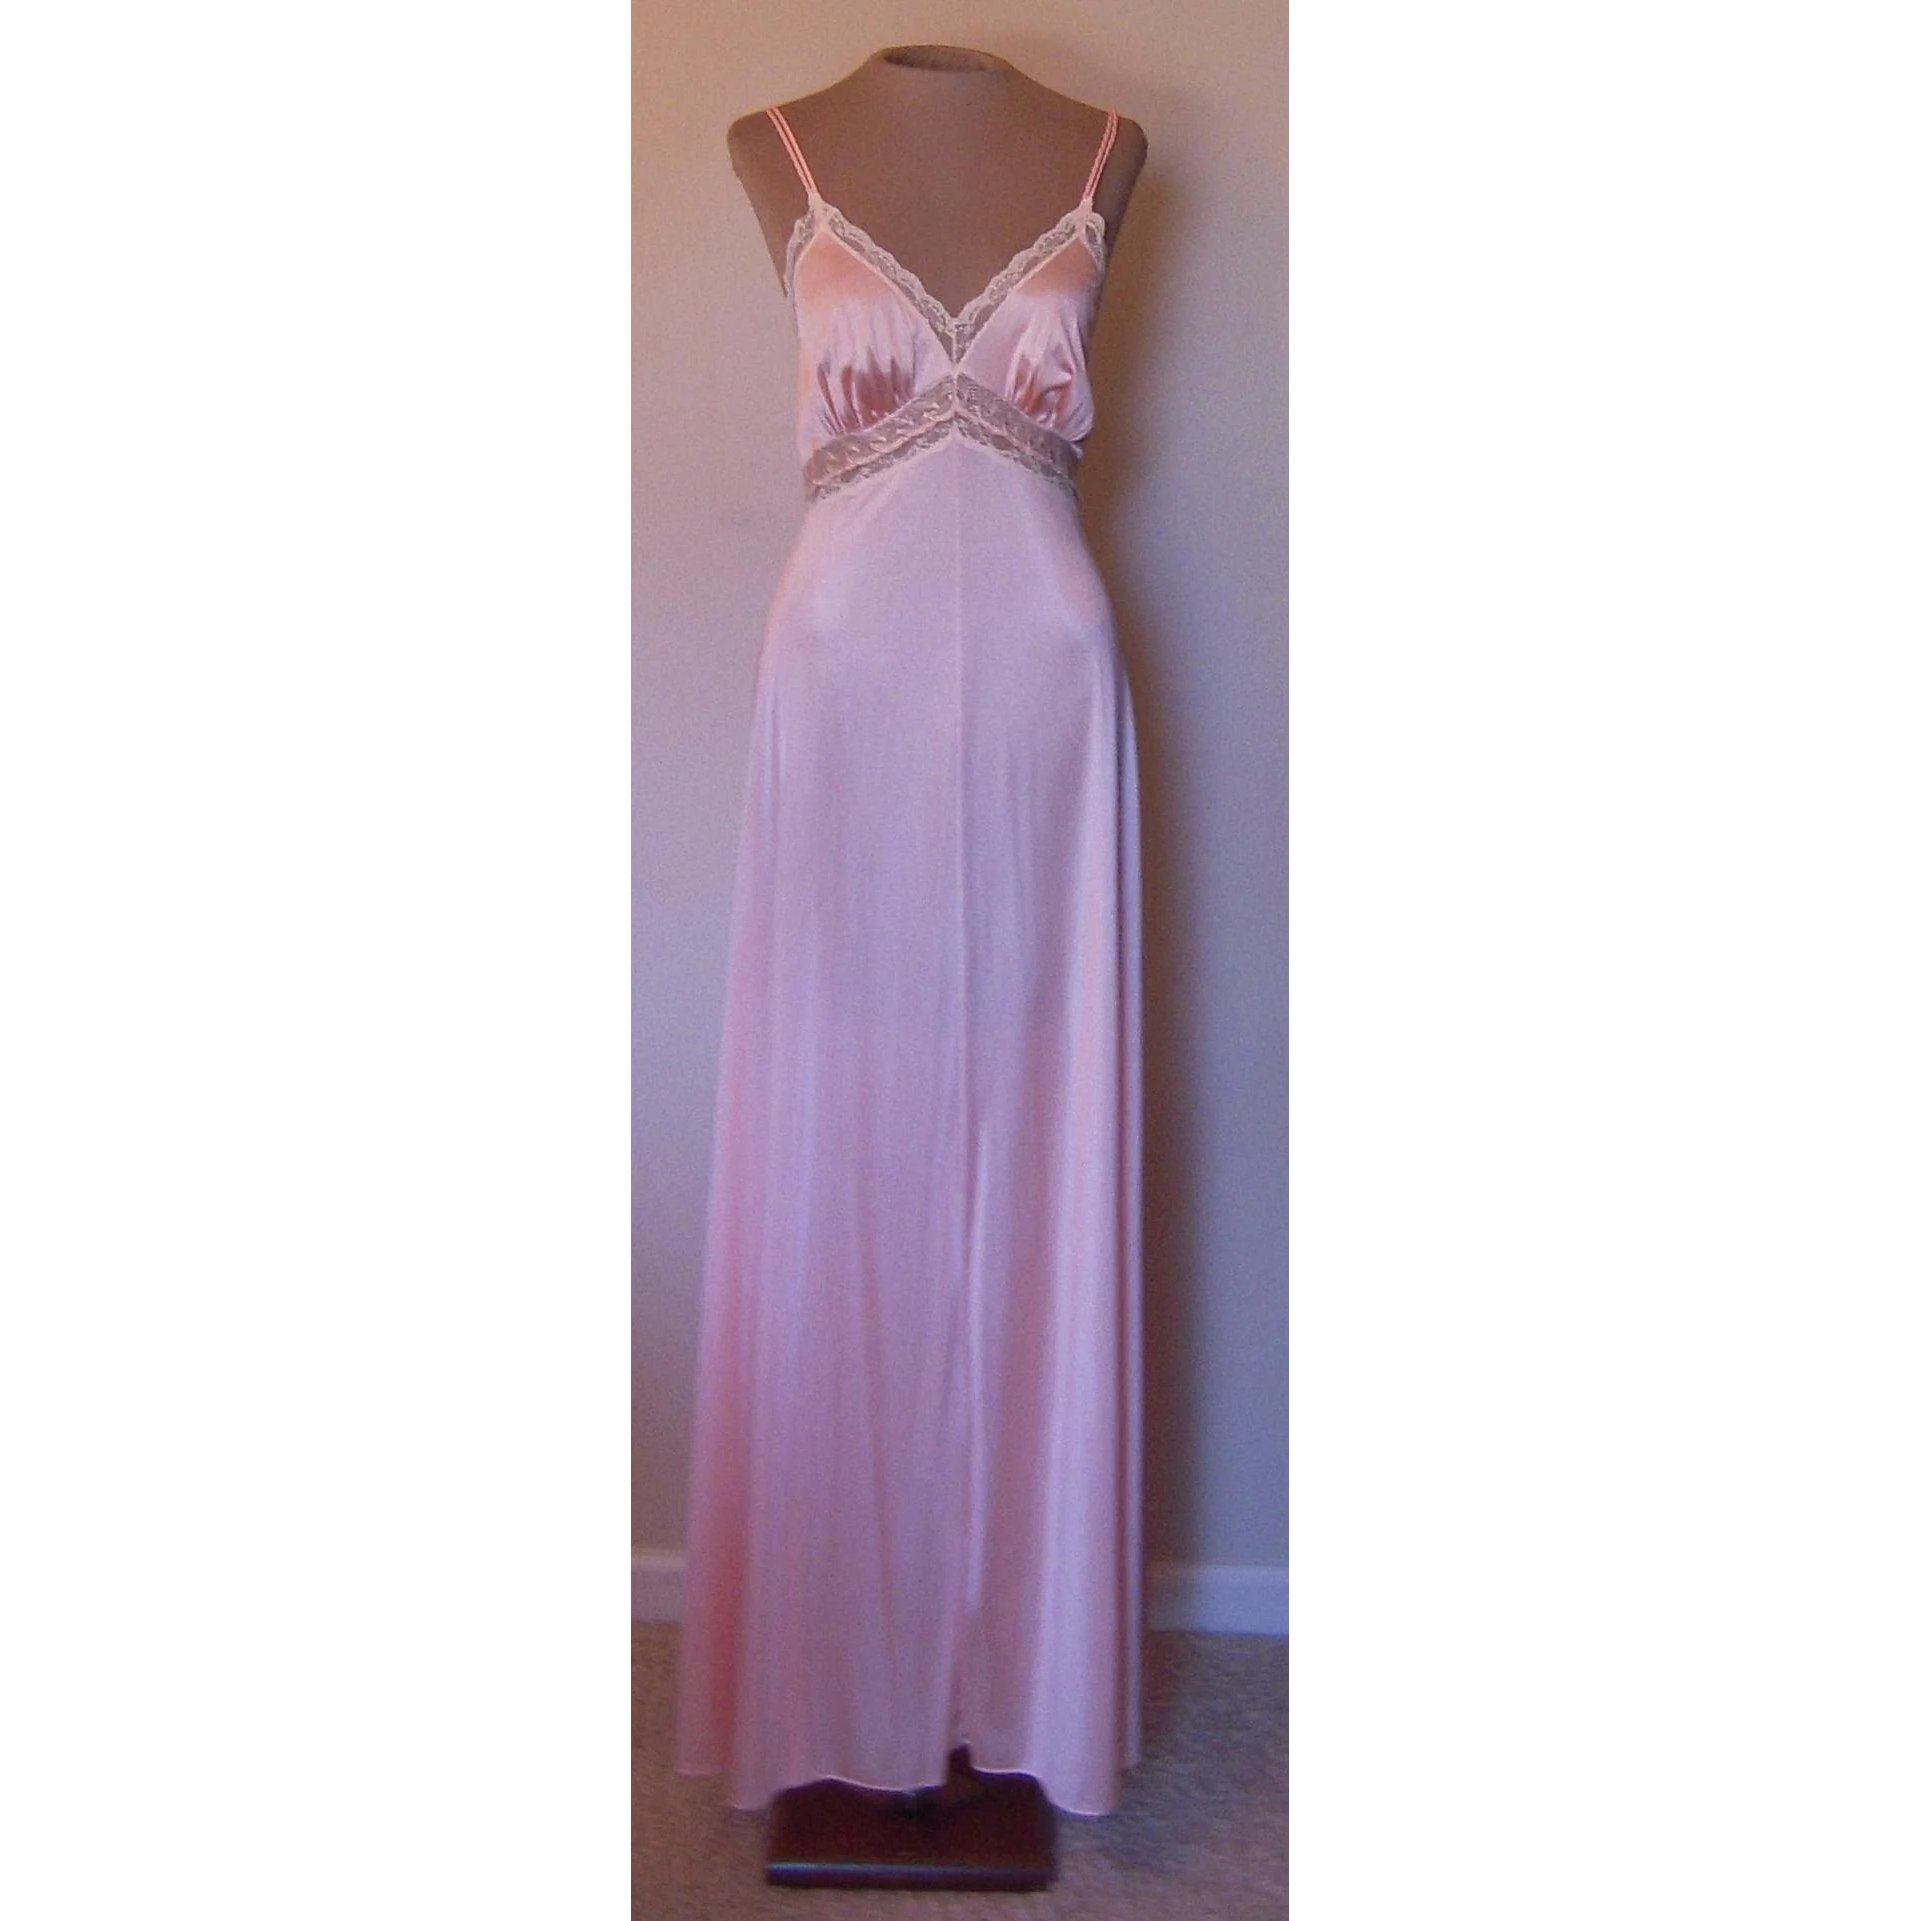 34b5db0a2e8 Vintage Peach Vassarette Long Nightgown with Pretty Lace   Beca s Boutique